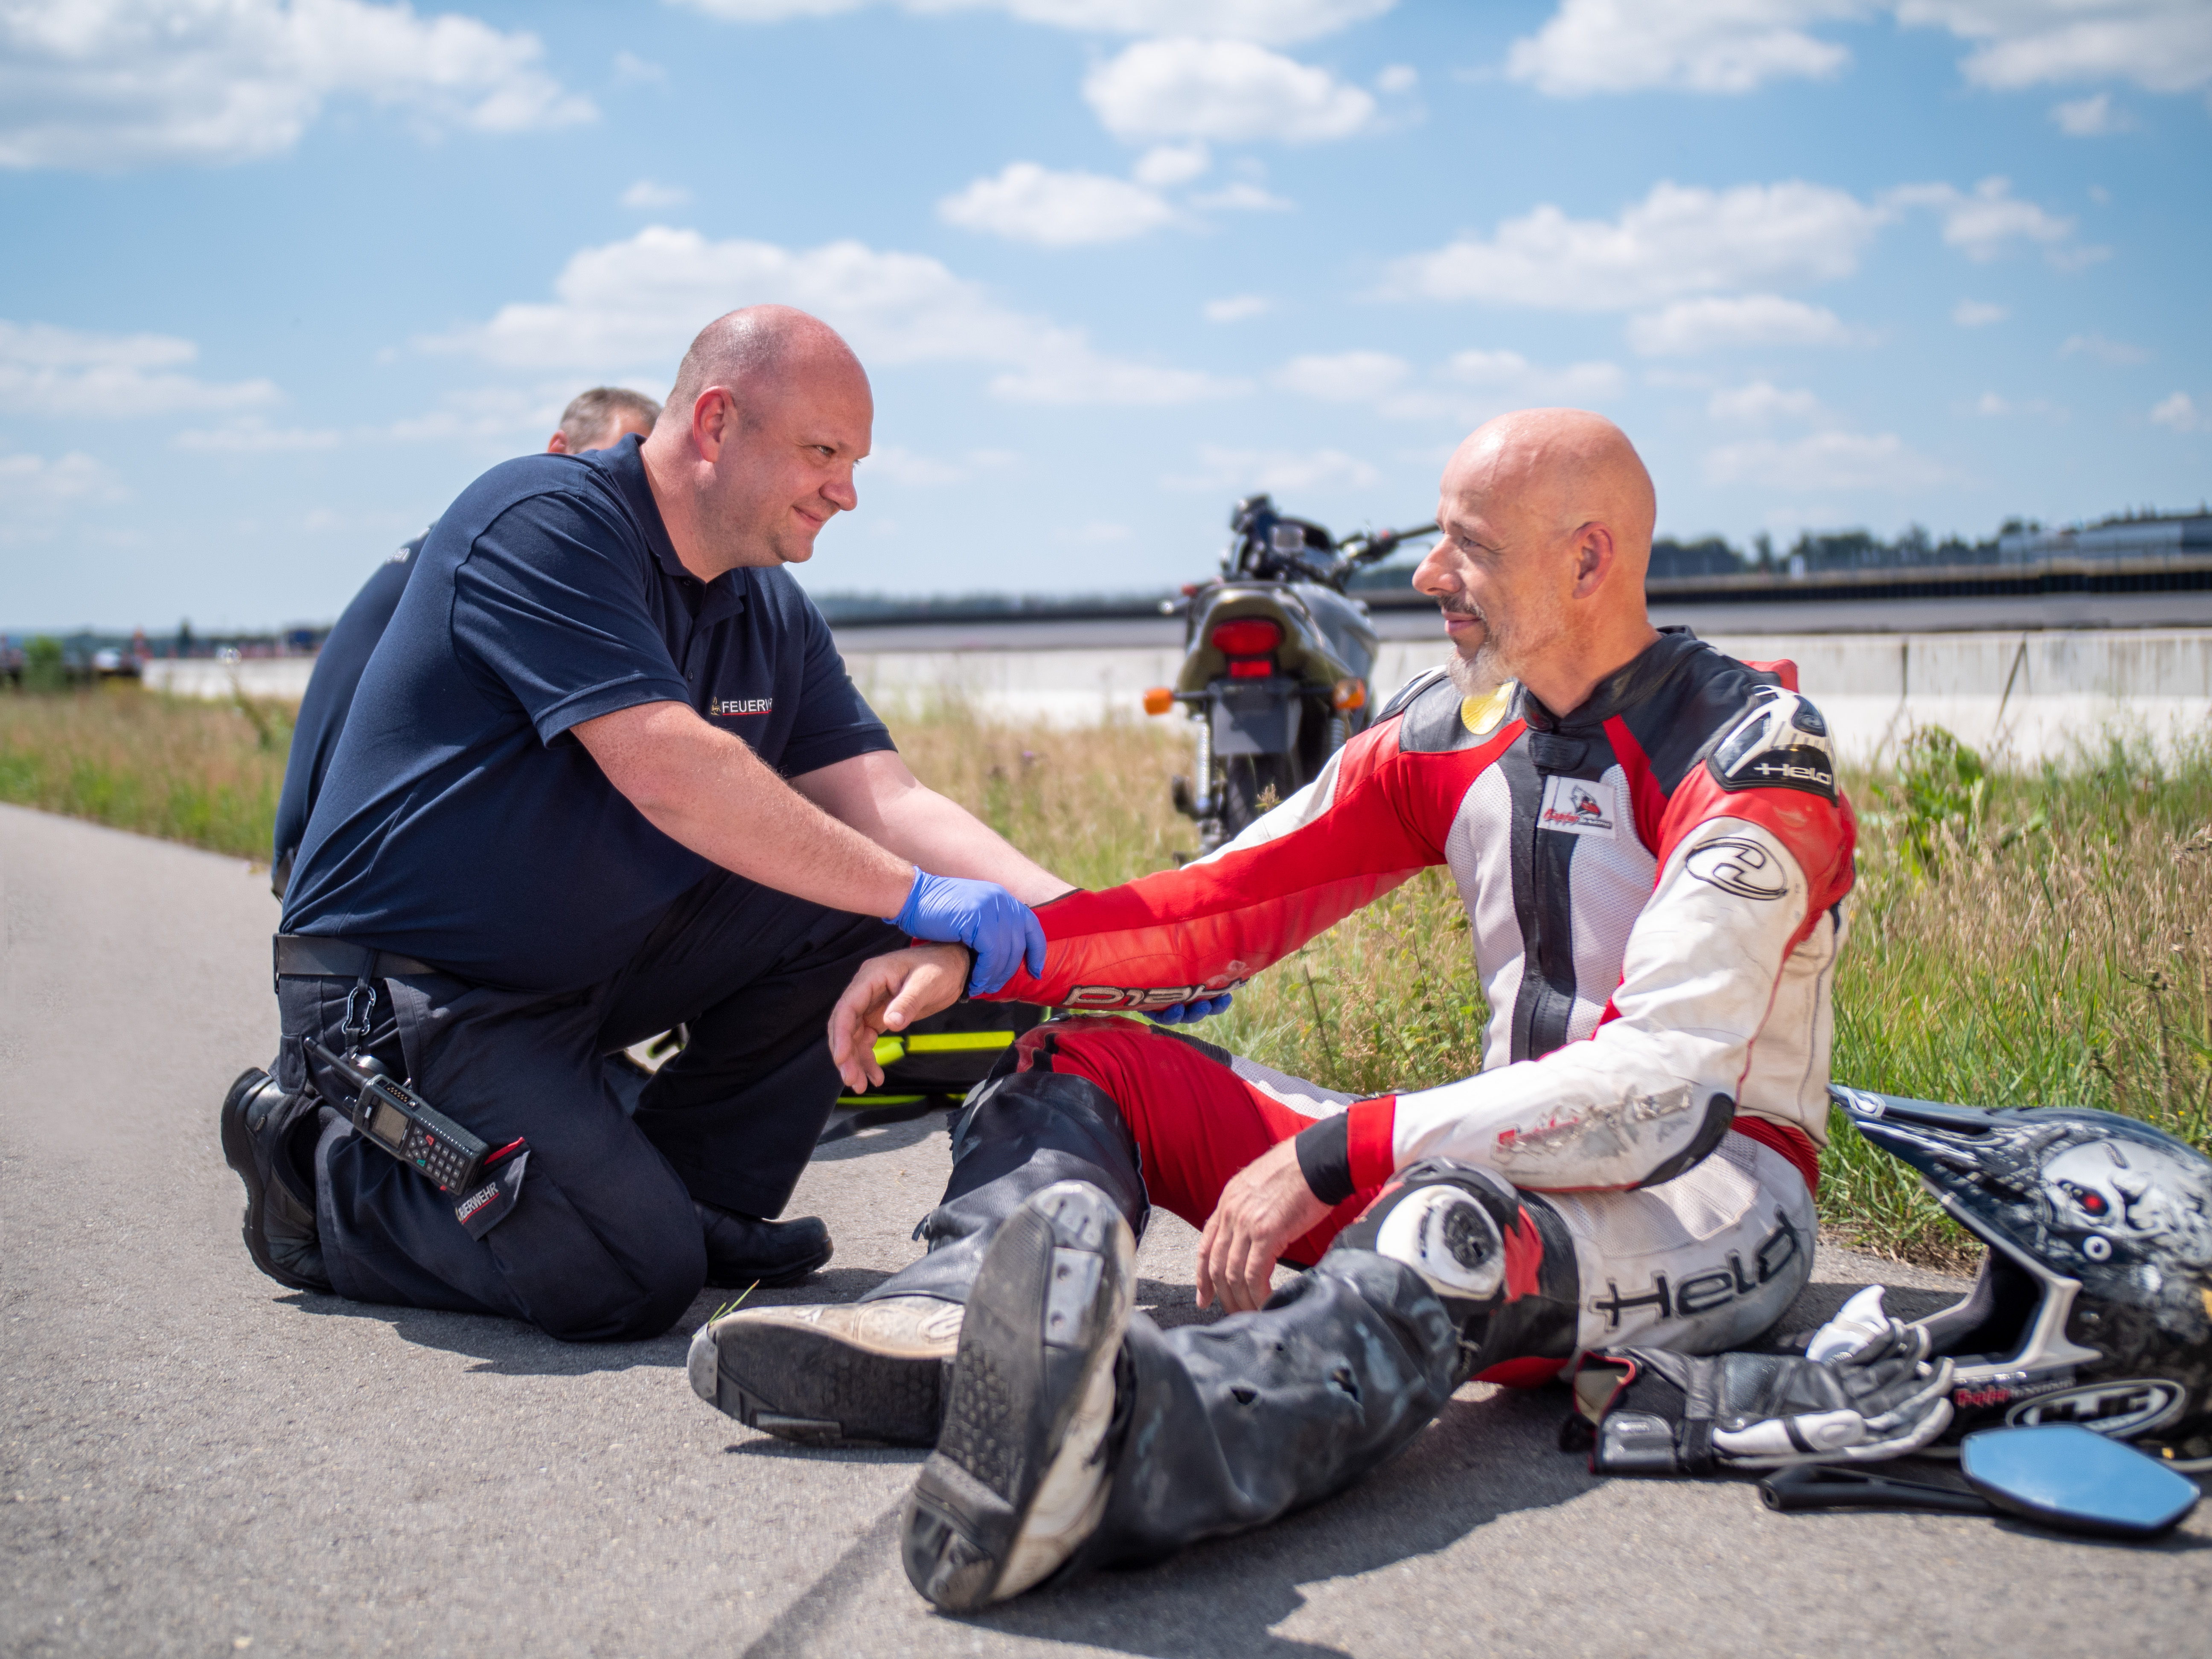 Help Connect ensures greater two-wheeler safety